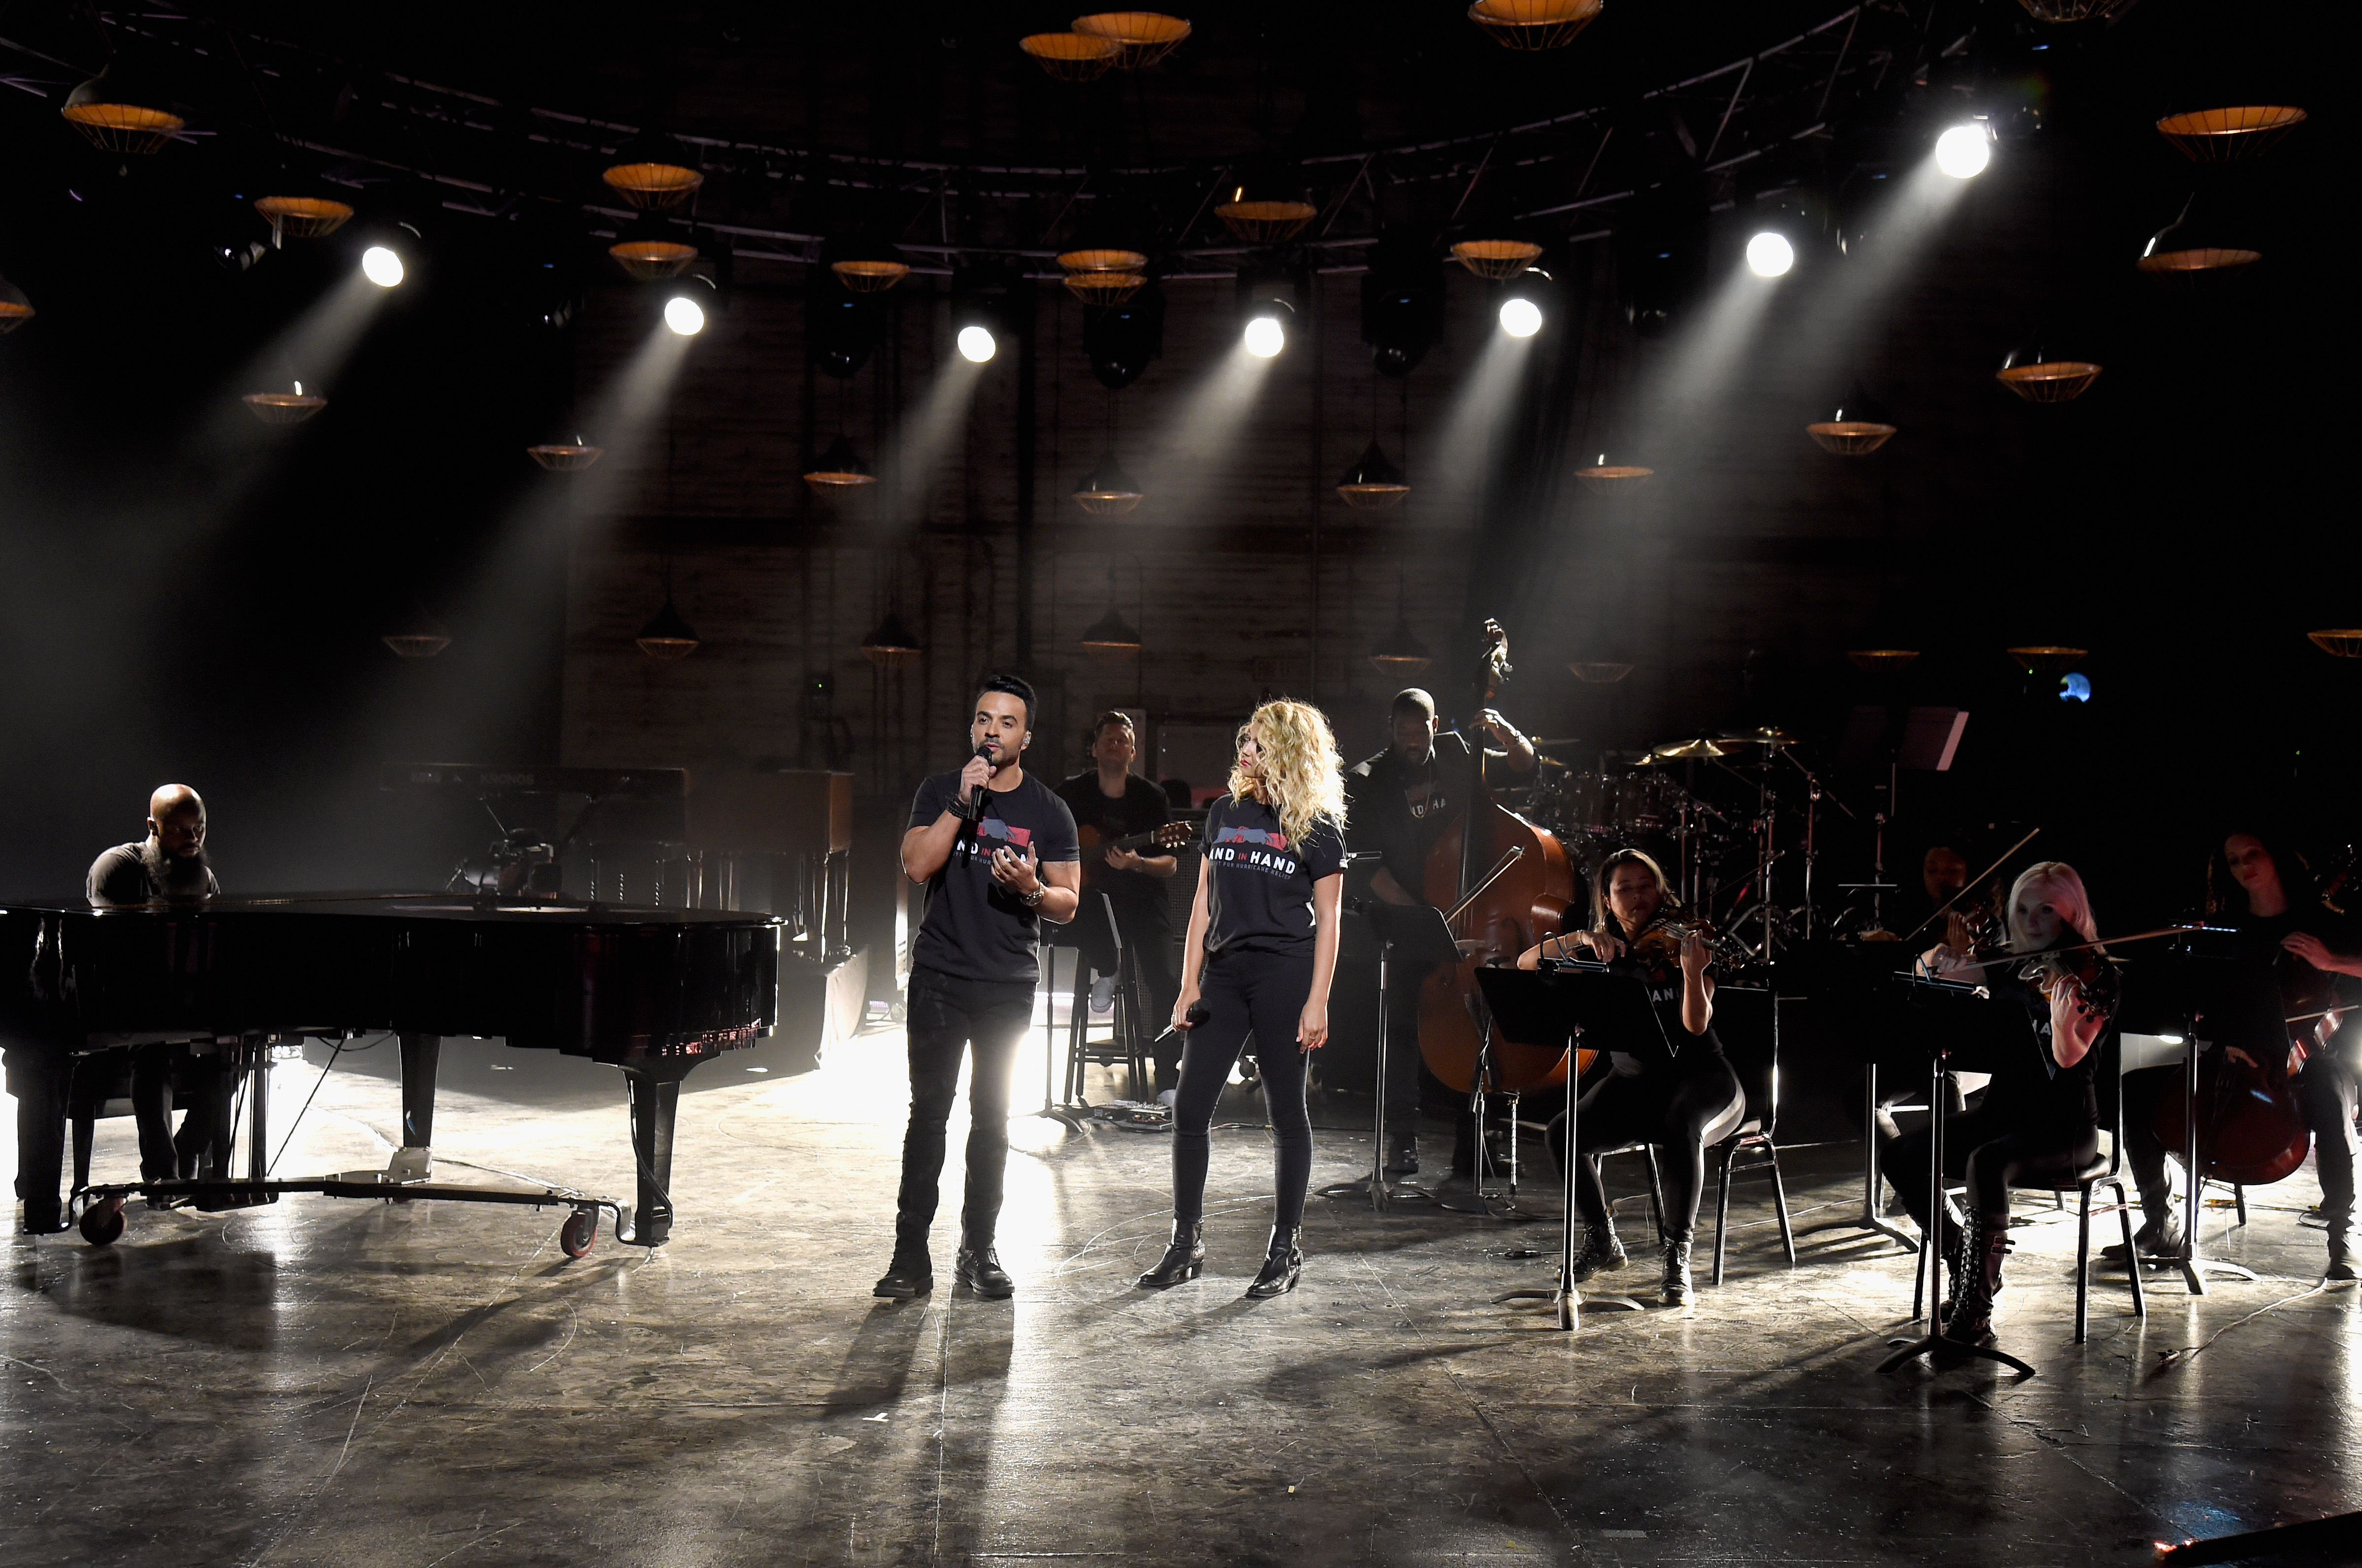 "<div class=""meta image-caption""><div class=""origin-logo origin-image none""><span>none</span></div><span class=""caption-text"">Luis Fonsi and Tori Kelly perform during Hand in Hand: A Benefit for Hurricane Relief at Universal Studios AMC on September 12, 2017 in Universal City, California. (Kevin Mazur/Hand in Hand/Getty Images)</span></div>"